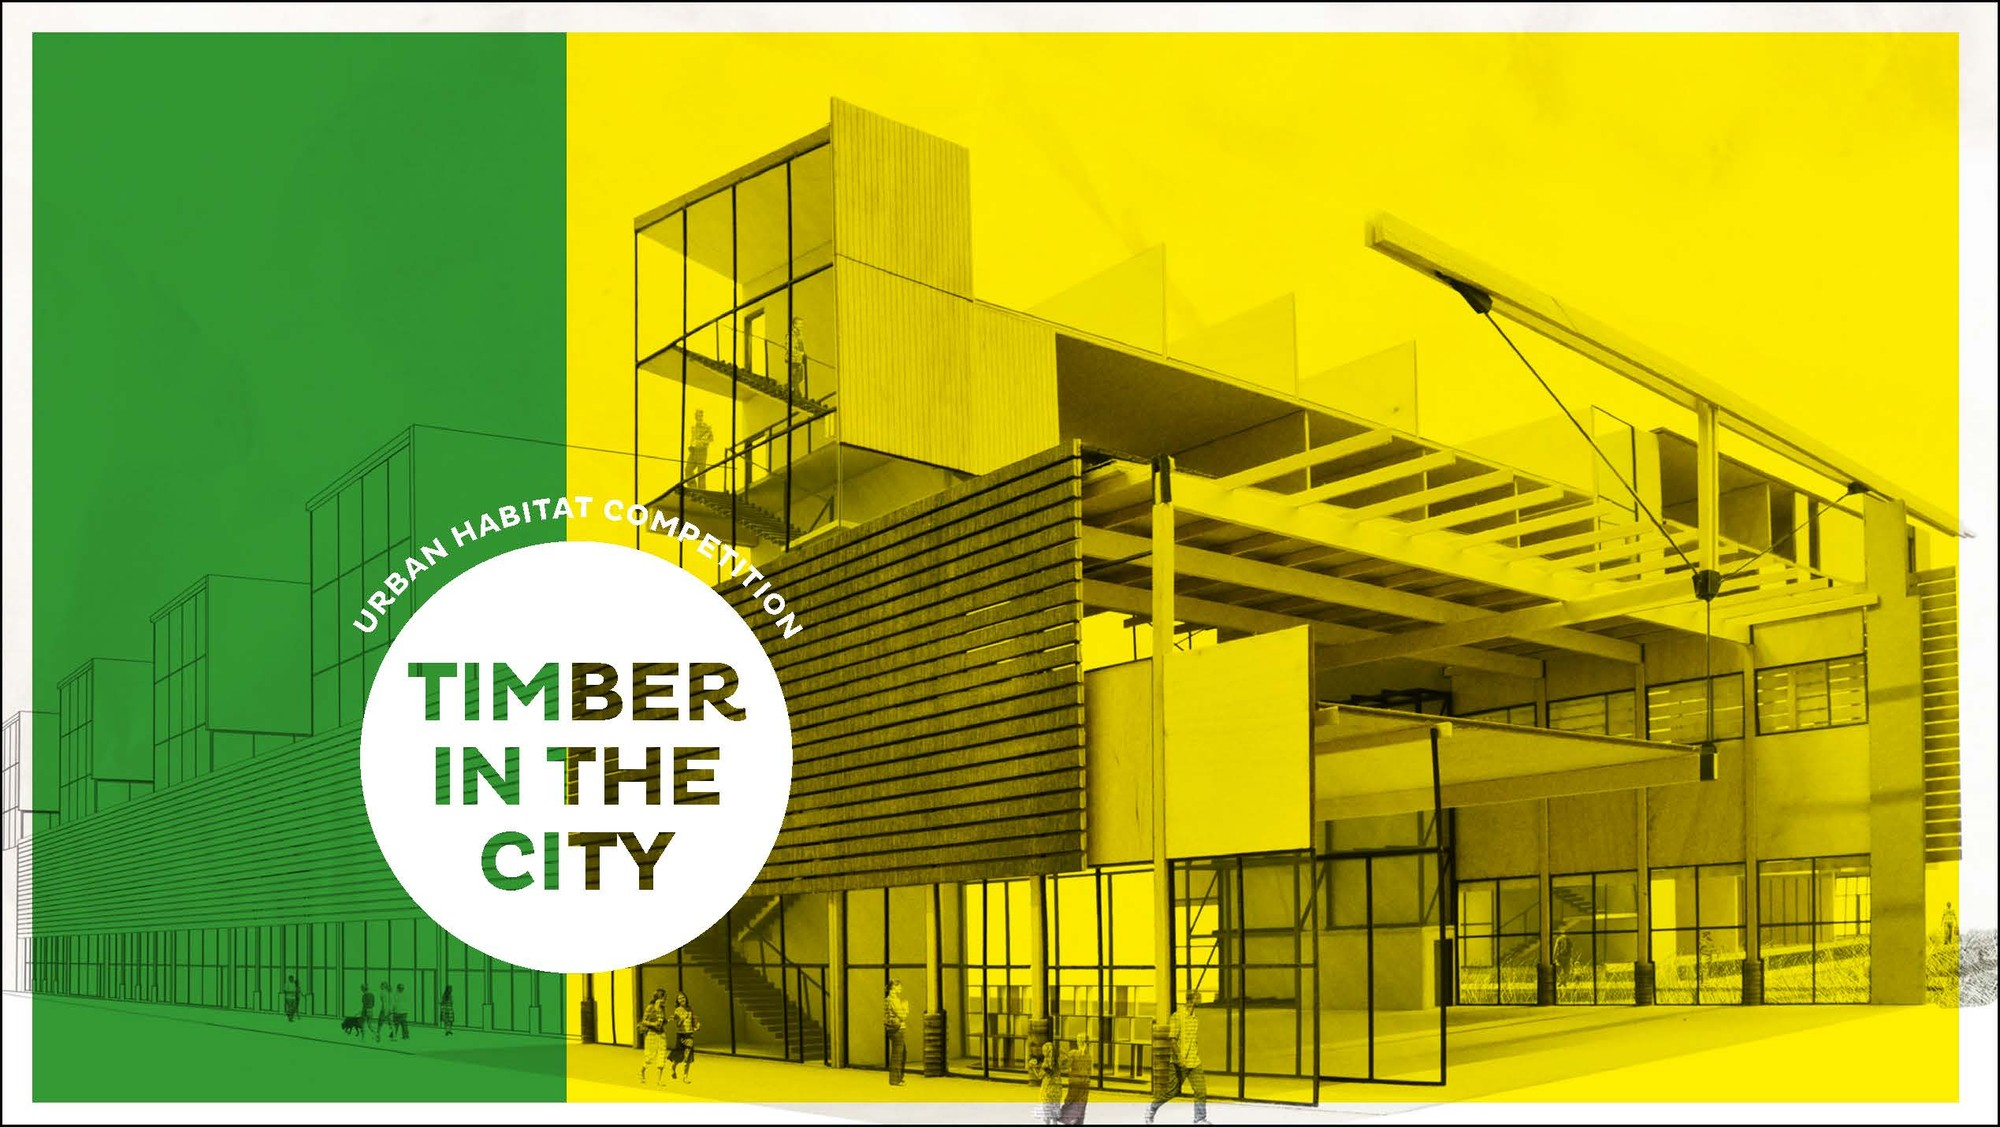 TIMBER IN THE CITY: Urban Habitats Competition 2015/2016, © ACSA